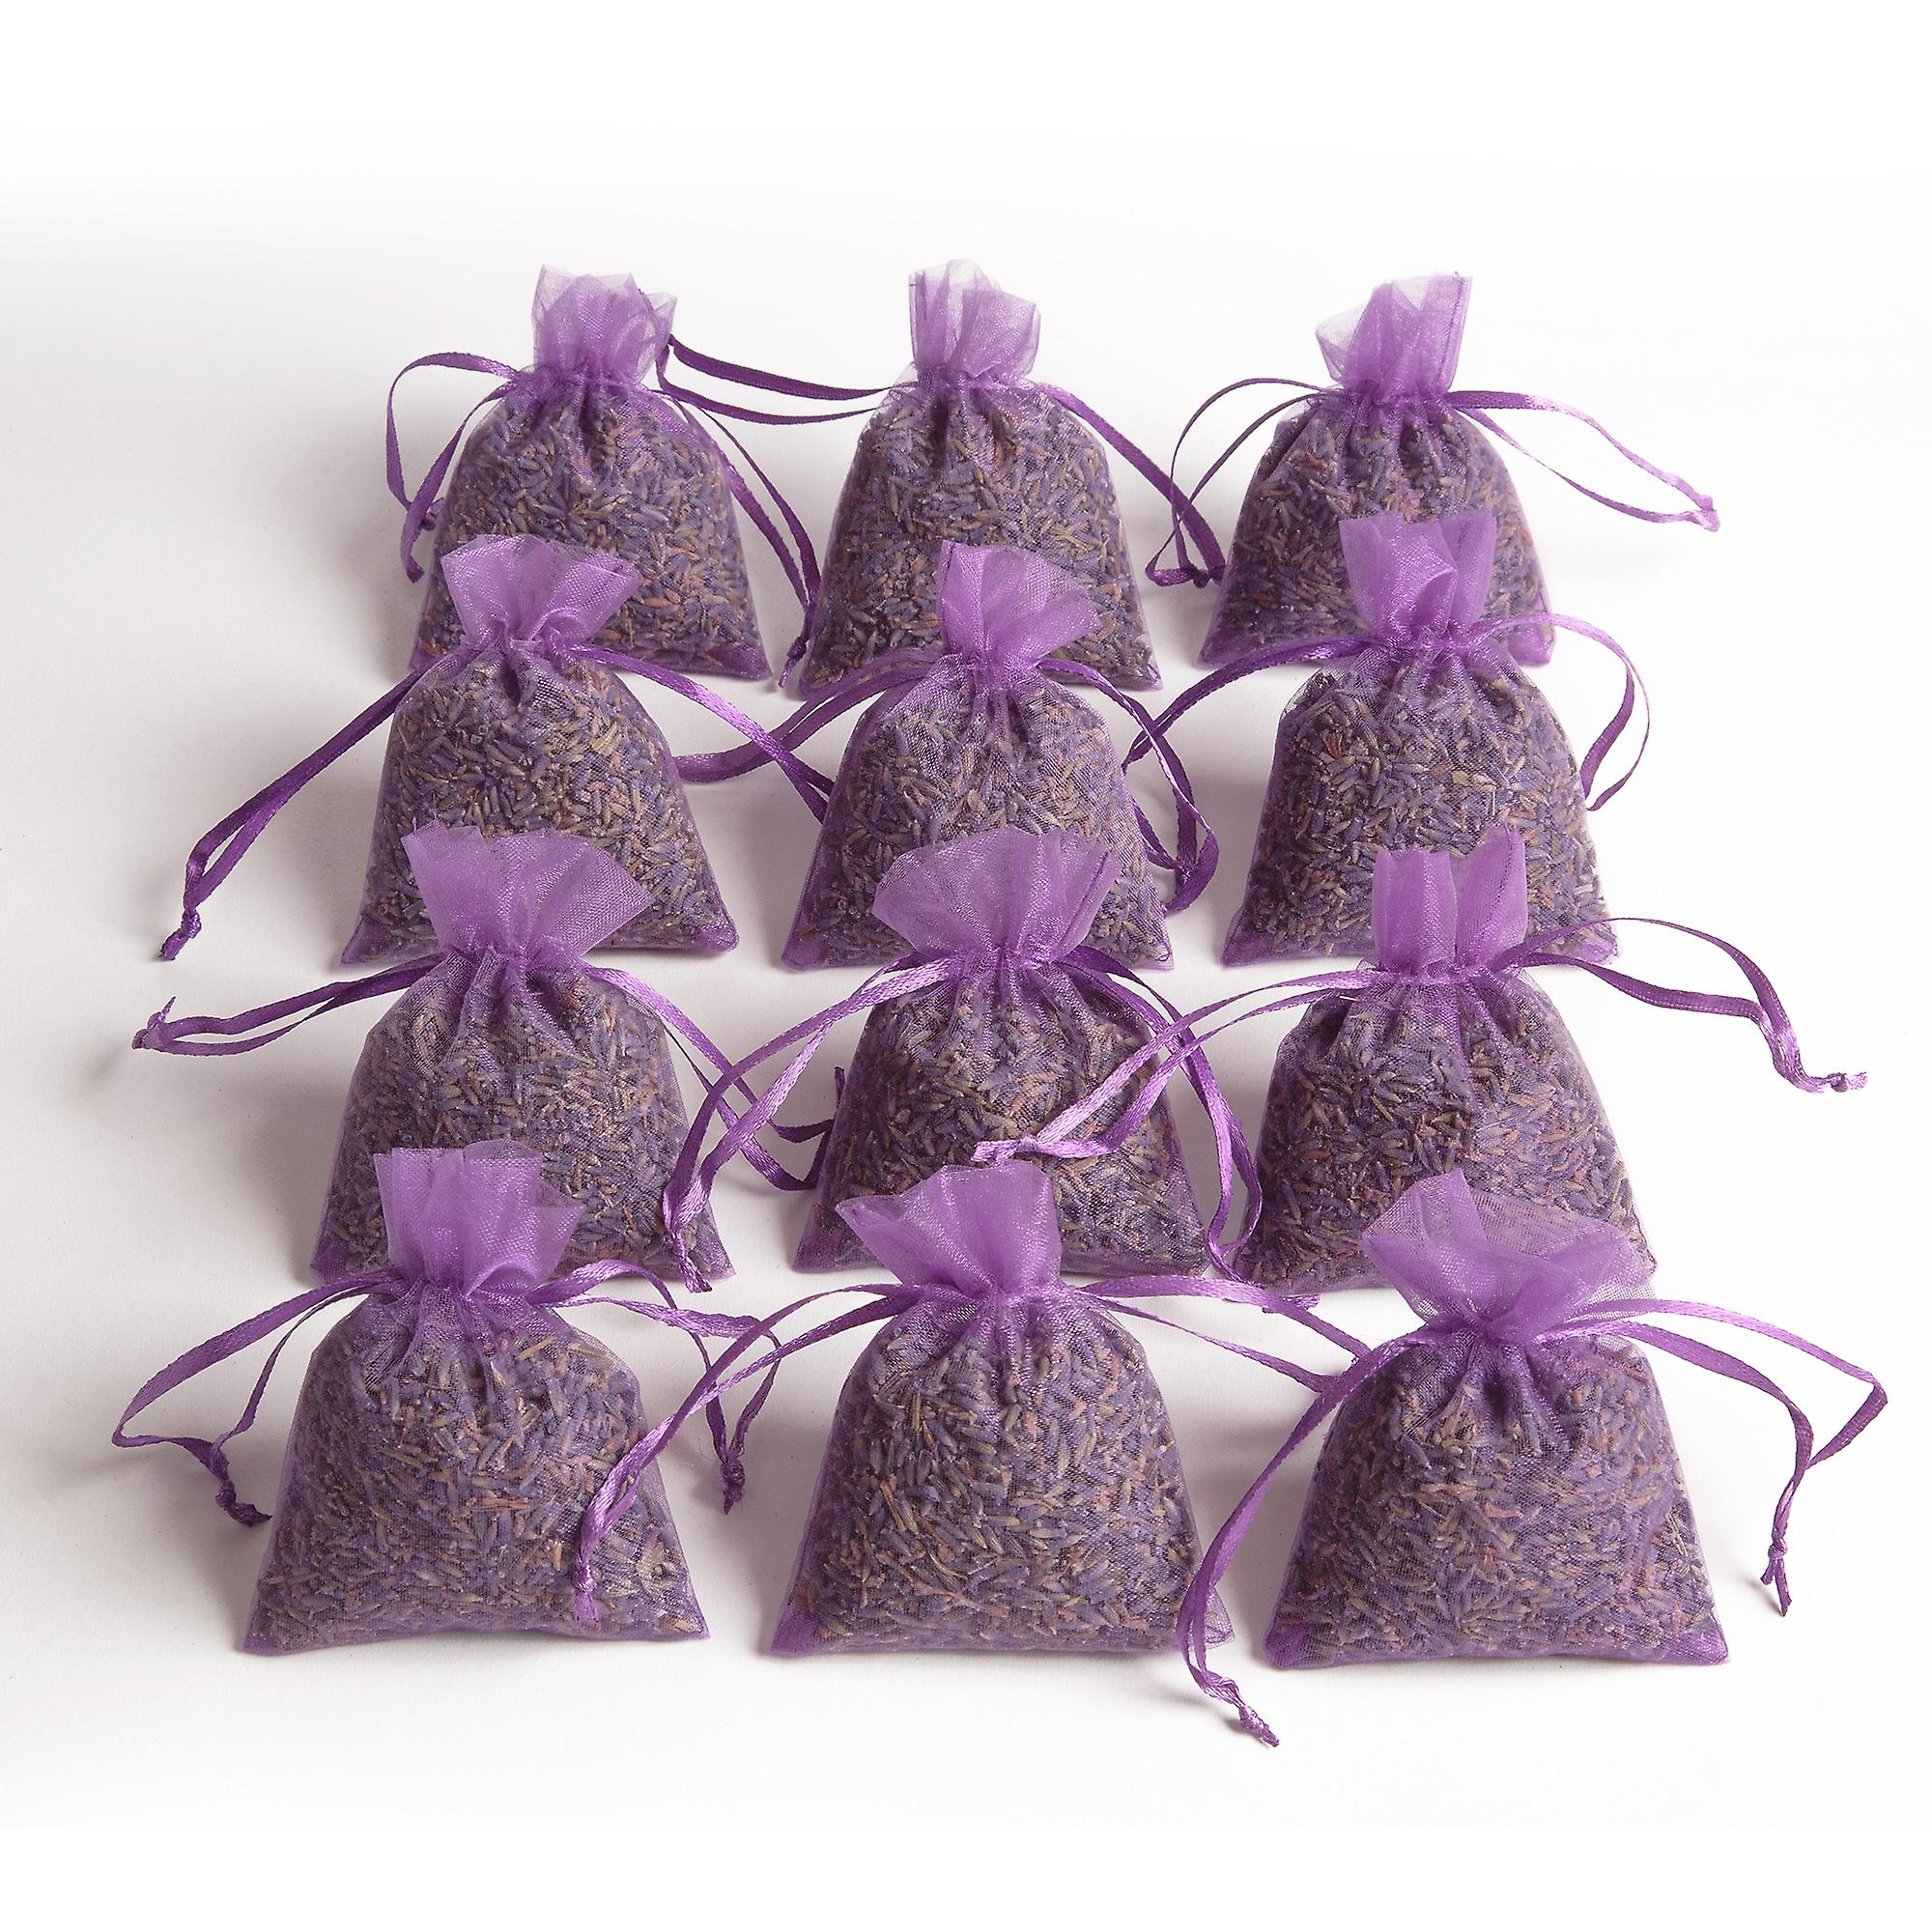 12 Lavender Bags Purple Dried Lavender Room Scent with Lavender Flowers as Moth Protection and Car Scent